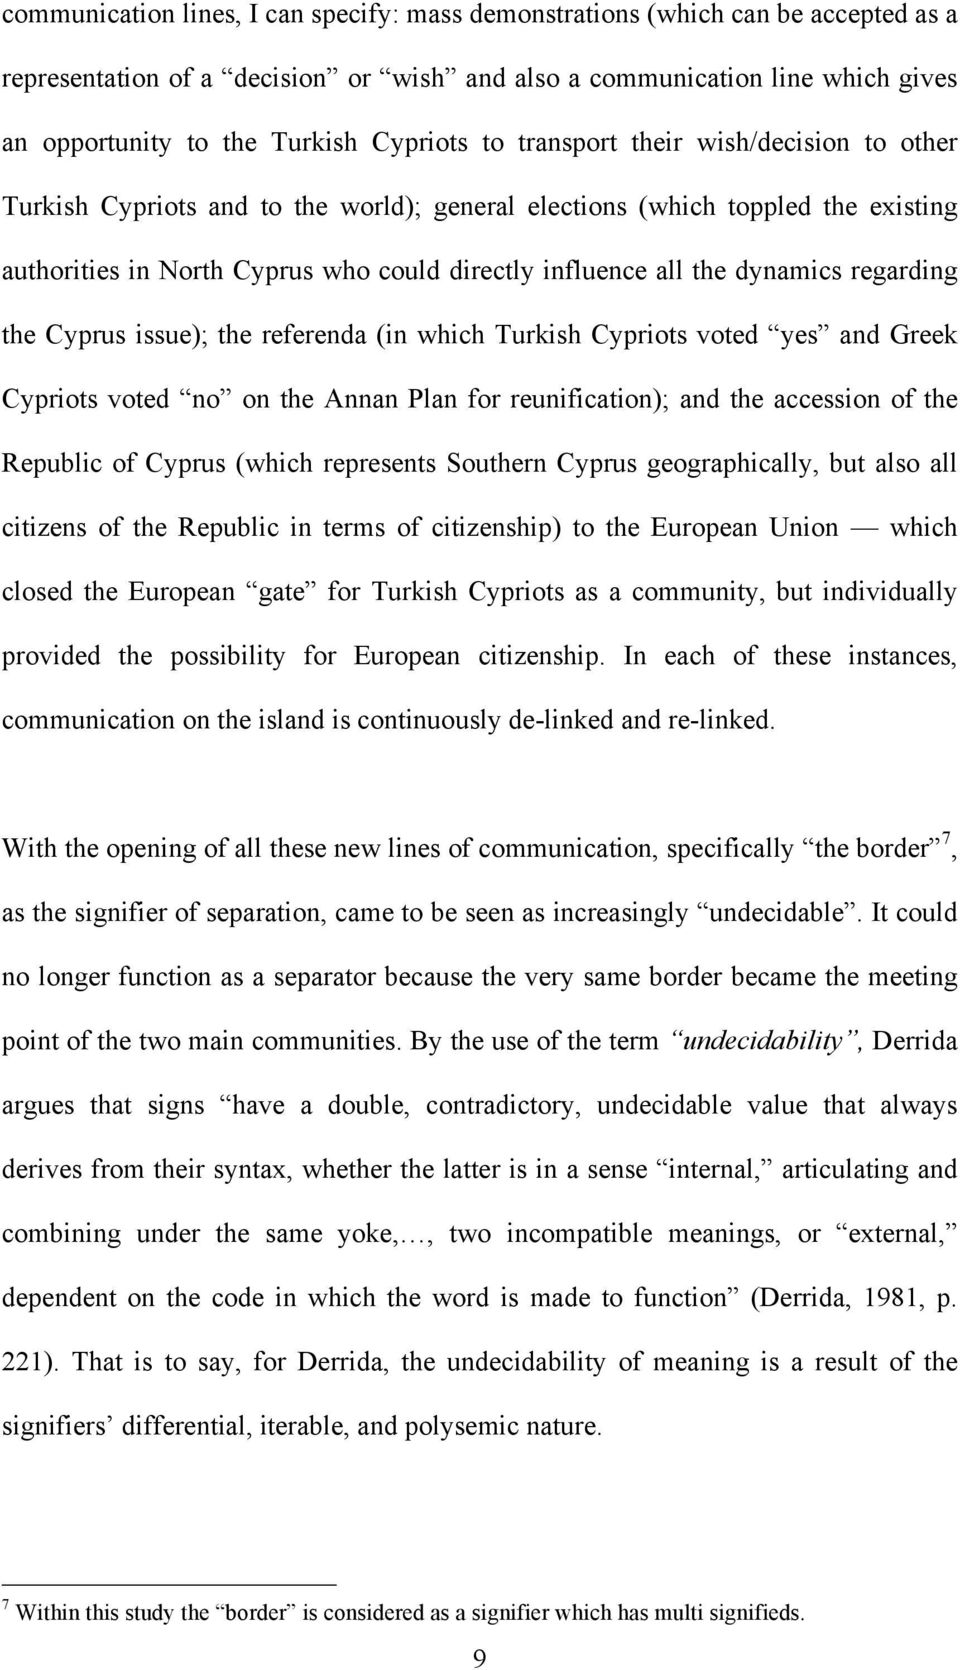 dynamics regarding the Cyprus issue); the referenda (in which Turkish Cypriots voted yes and Greek Cypriots voted no on the Annan Plan for reunification); and the accession of the Republic of Cyprus